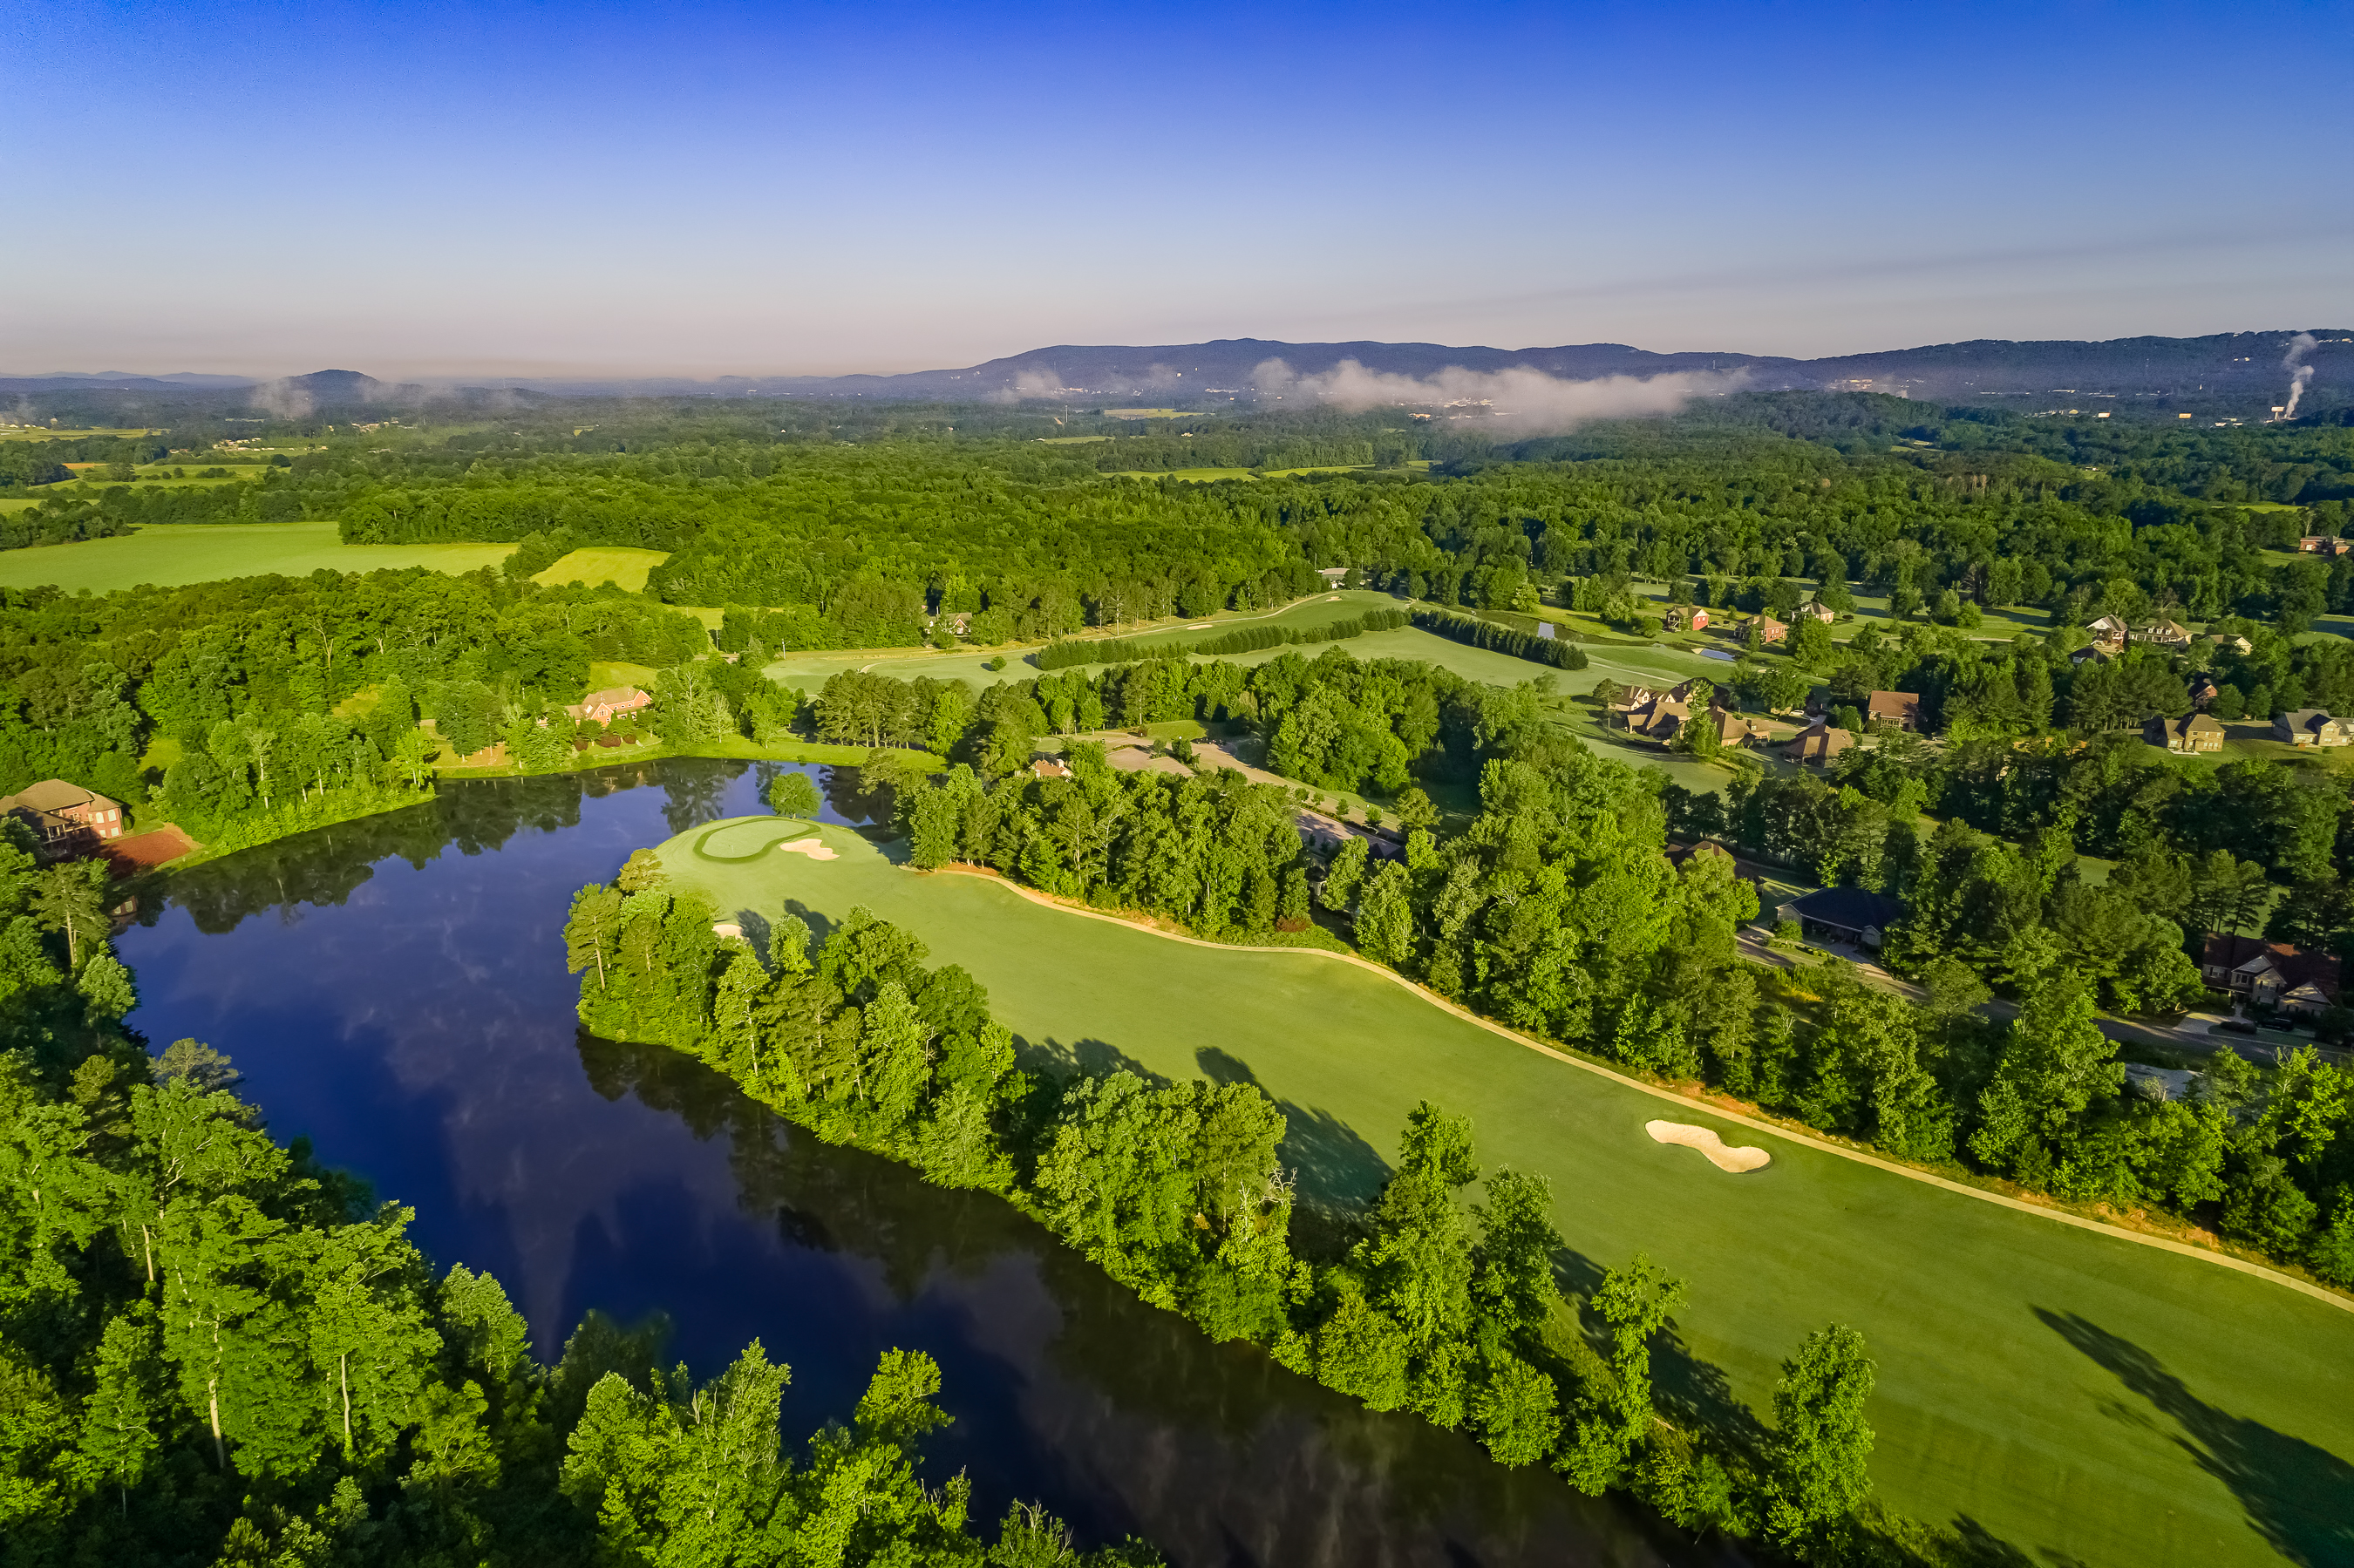 https://alabama-travel.s3.amazonaws.com/partners-uploads/photo/image/5ed6c193794f5600070d0cdf/Cider Ridge Golf Club - East Alabama - Located off i-20 between Birmingham and Atlanta.jpg